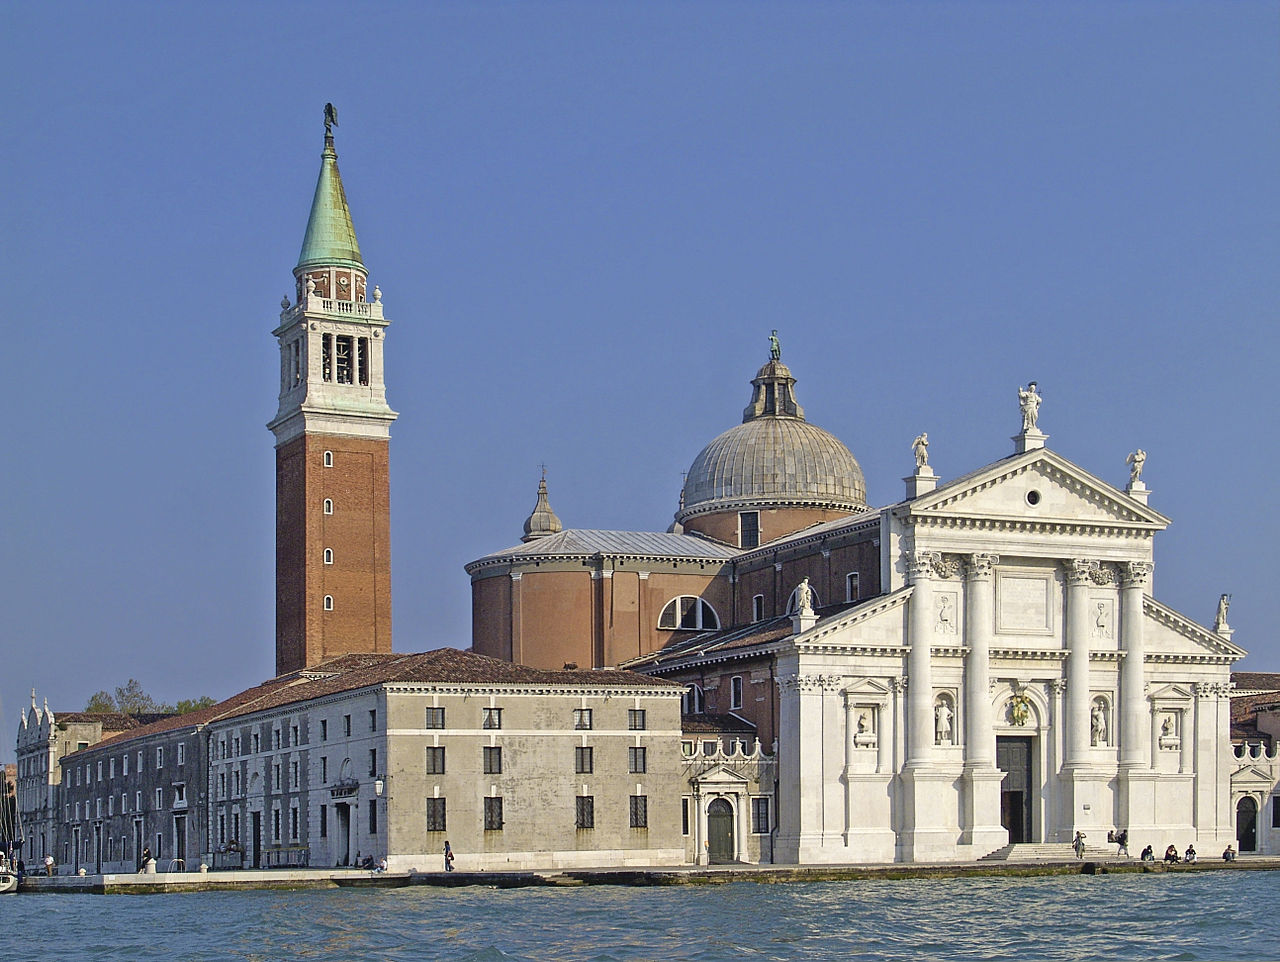 Andrea Palladio and the Venetian Renaissance - Virtual Guided Tour - Live Show